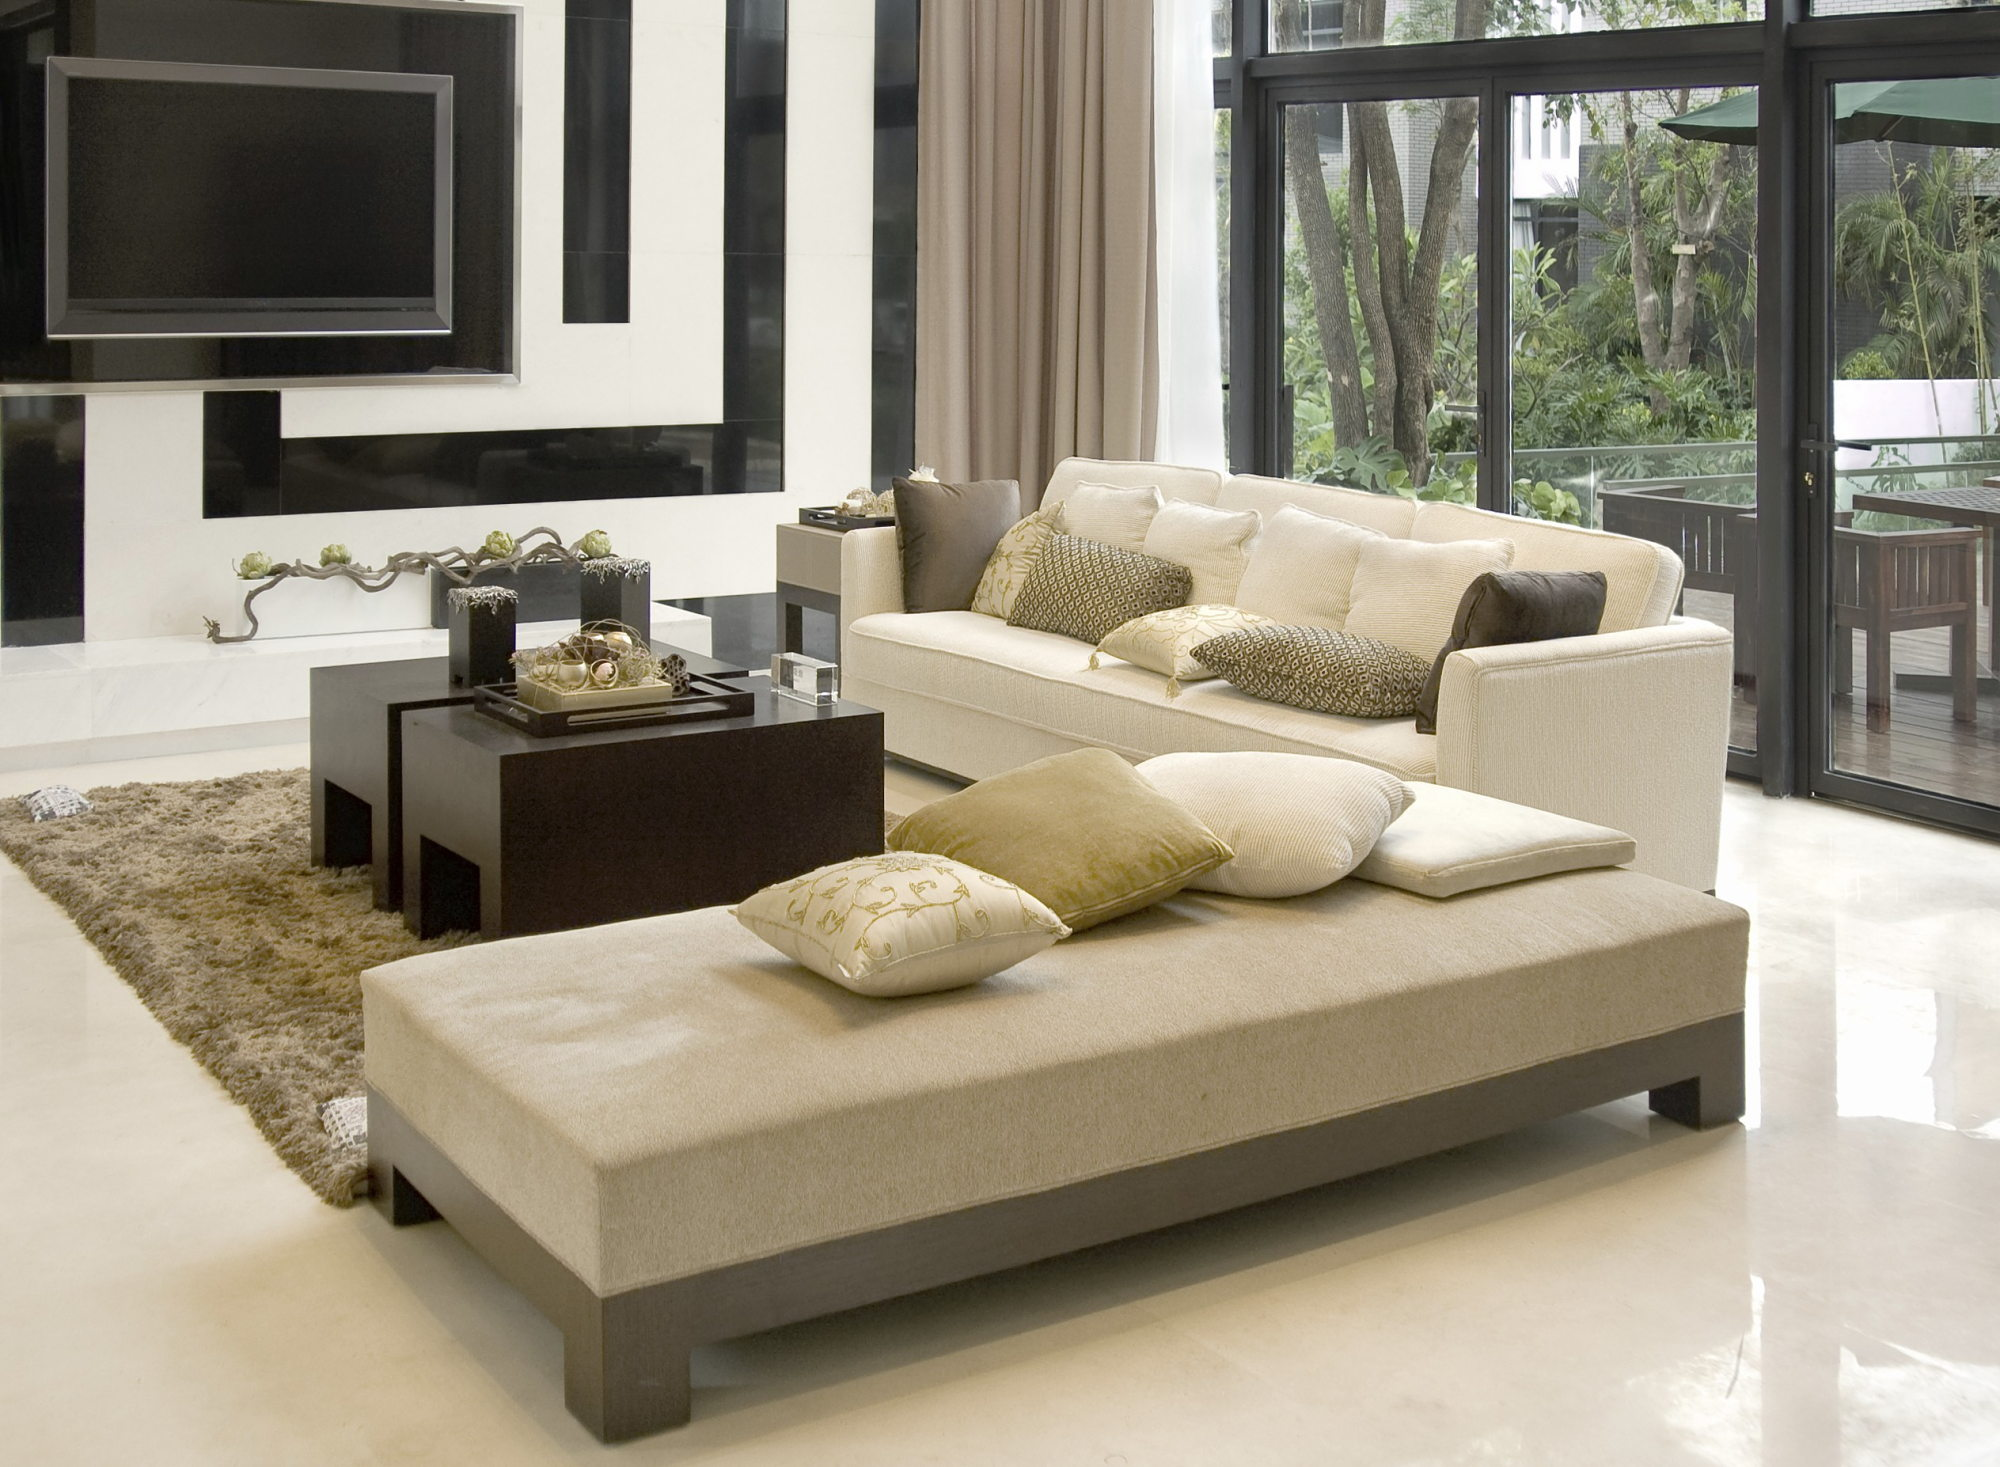 Beige Color In The Interior And Its